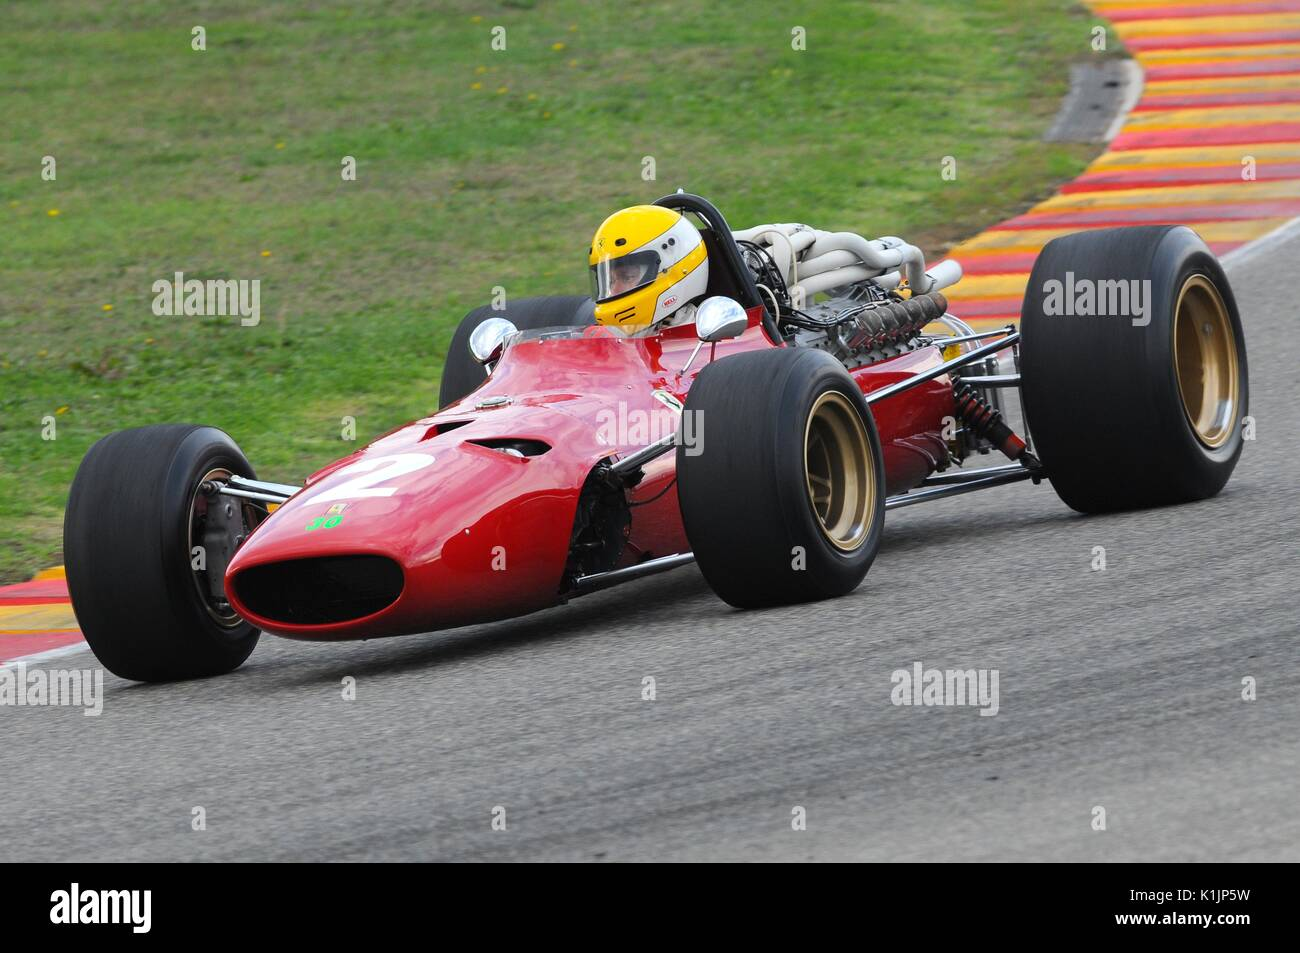 MUGELLO, IT, November, 2008: Unknown Run With Old 1960s Ferrari F1 At